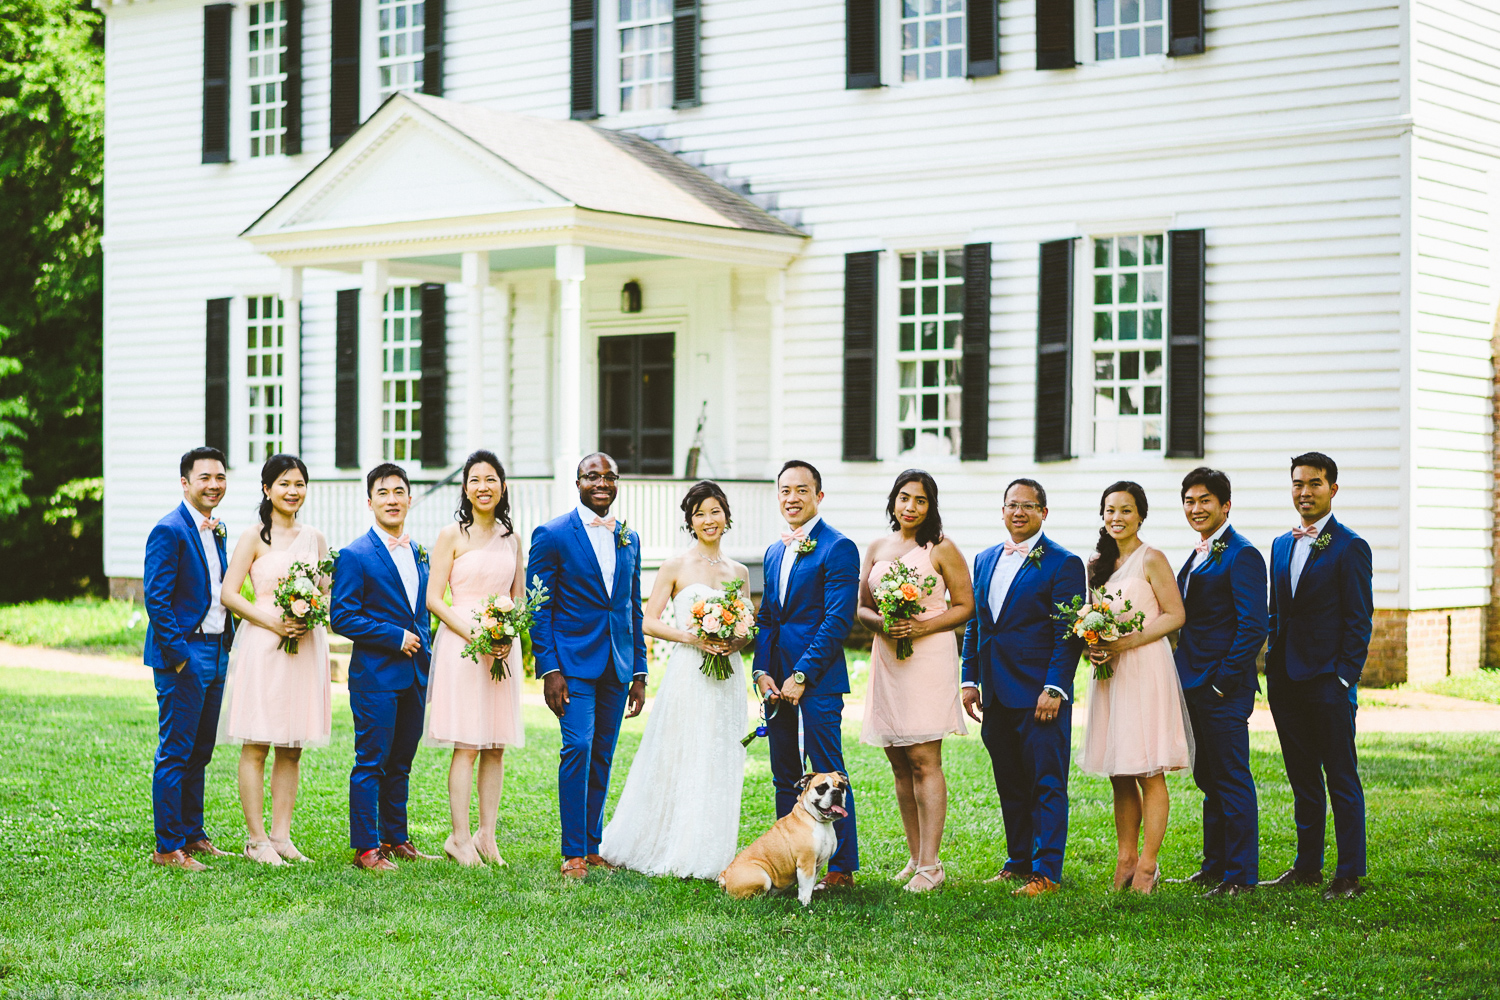 018 - virginia wedding photographer nathan mitchell bridal party with dog.jpg